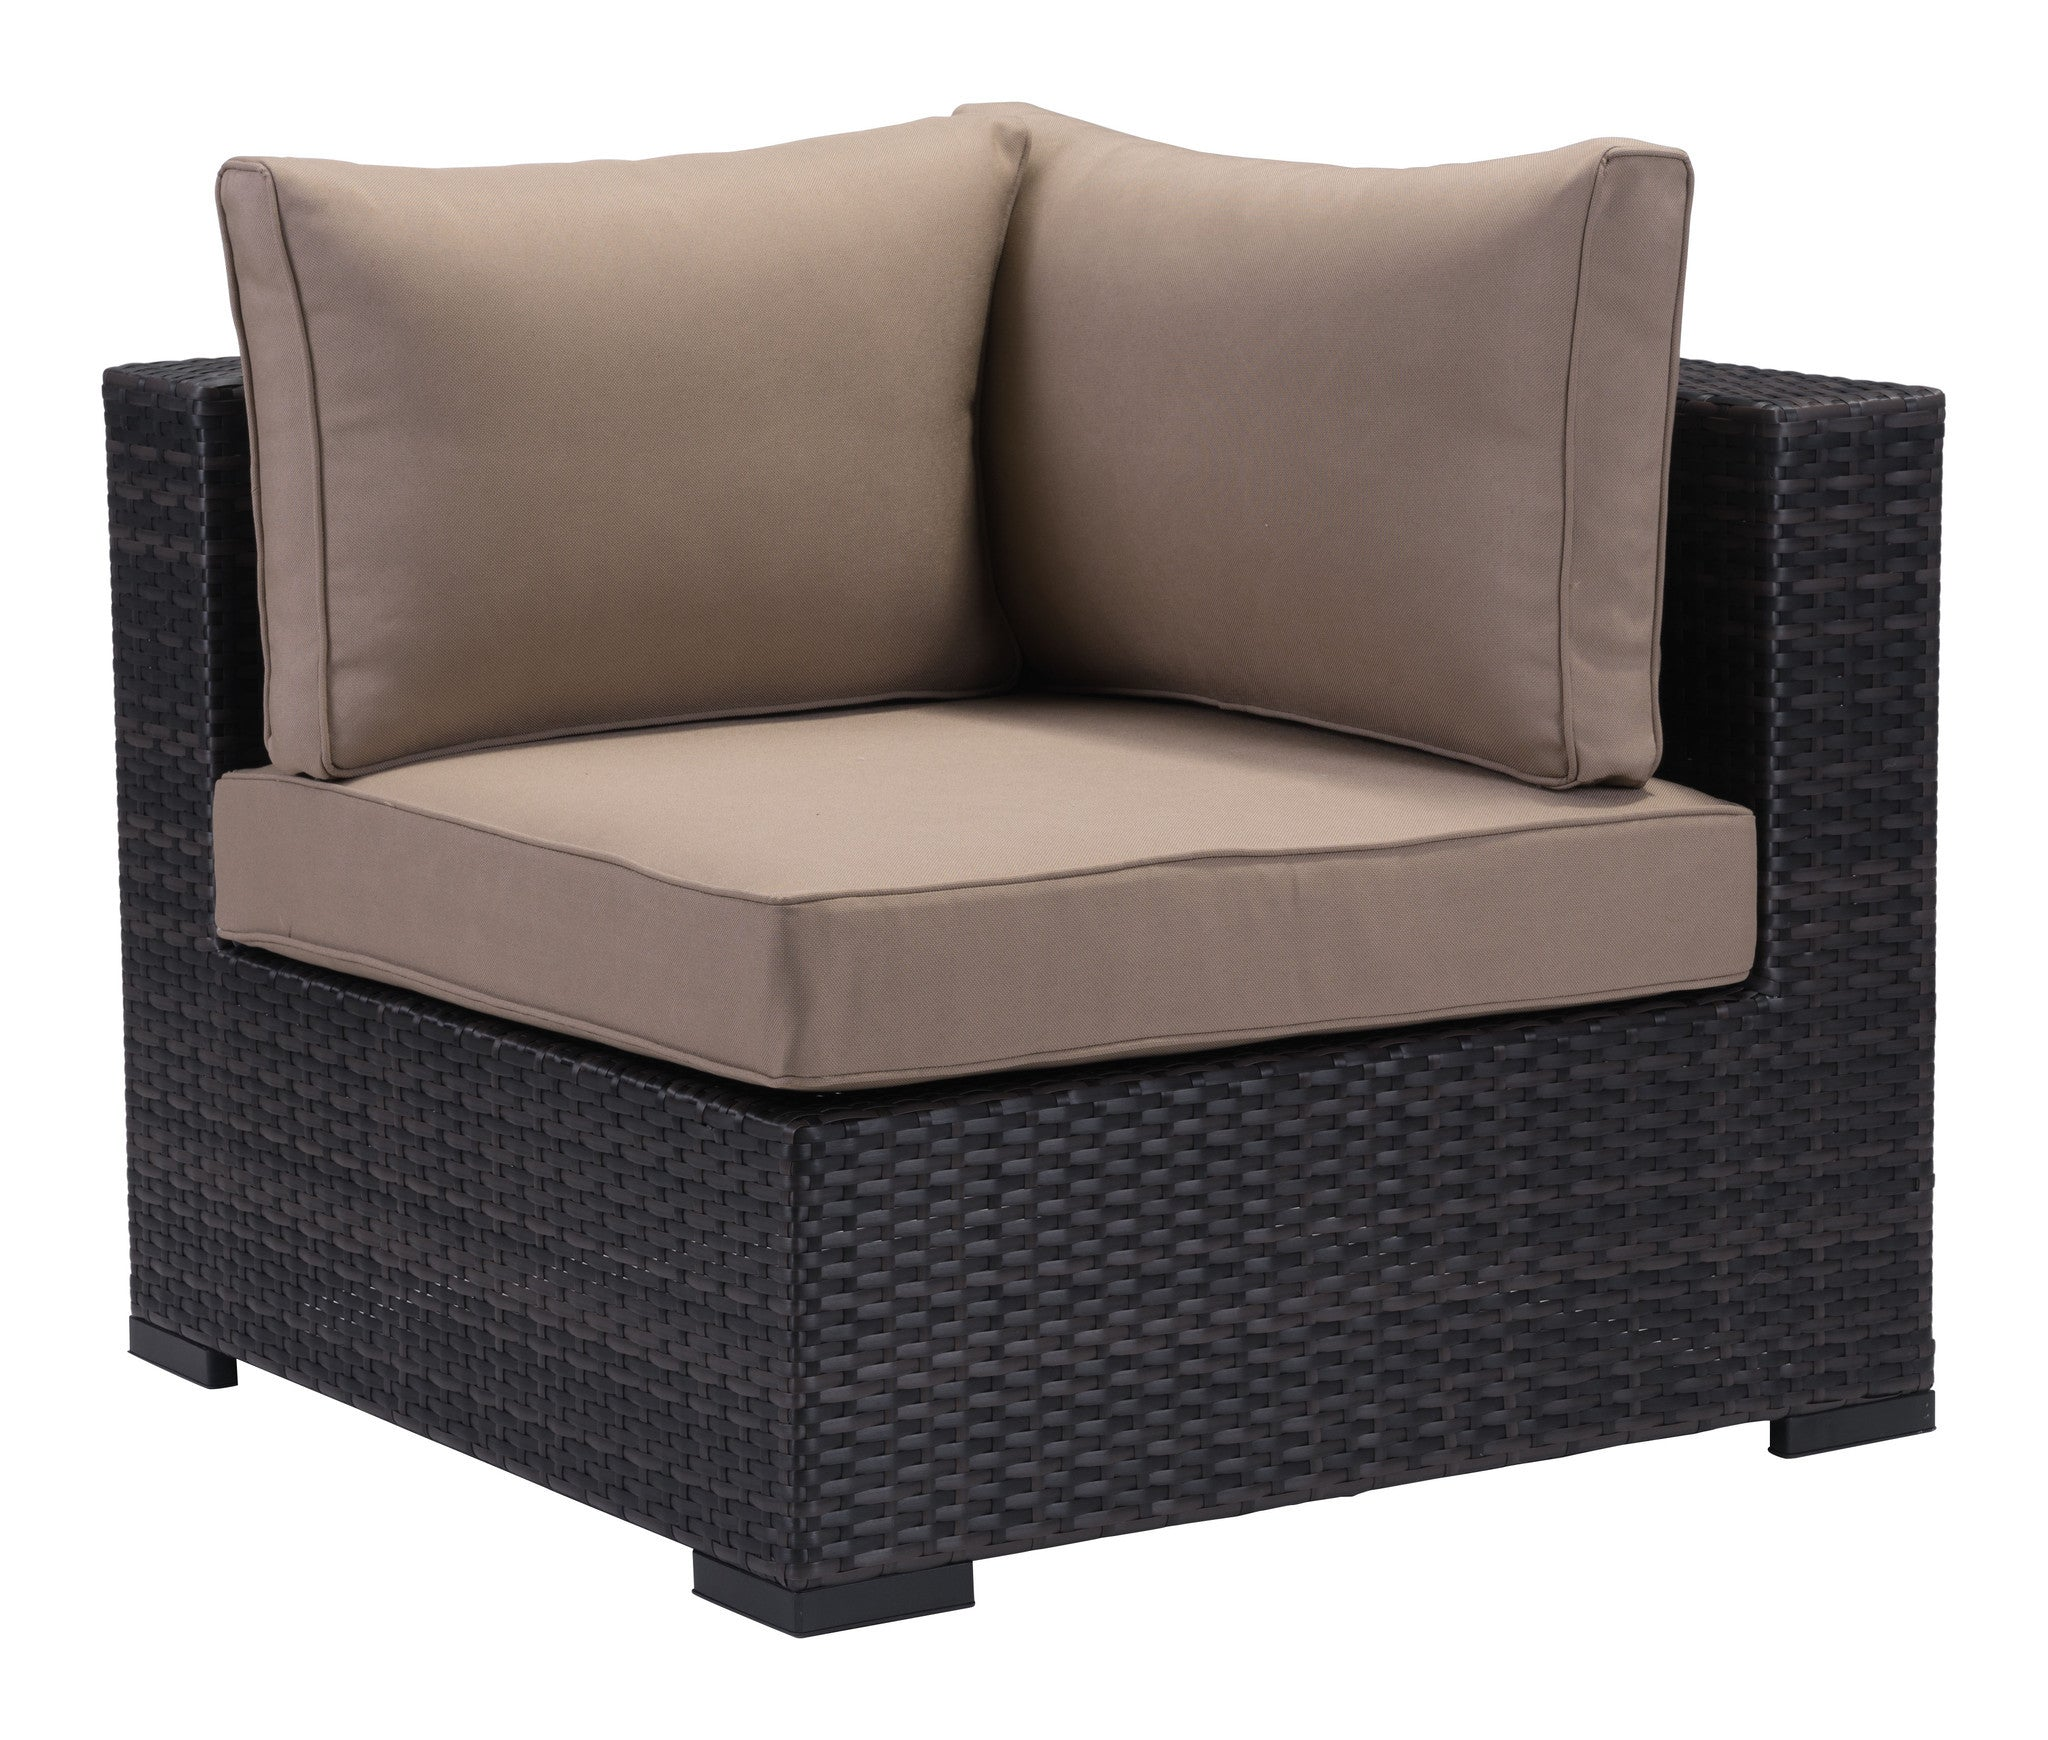 Bocagrande Patio Corner Chair in Brown Synthetic Weave with Beige Sunp